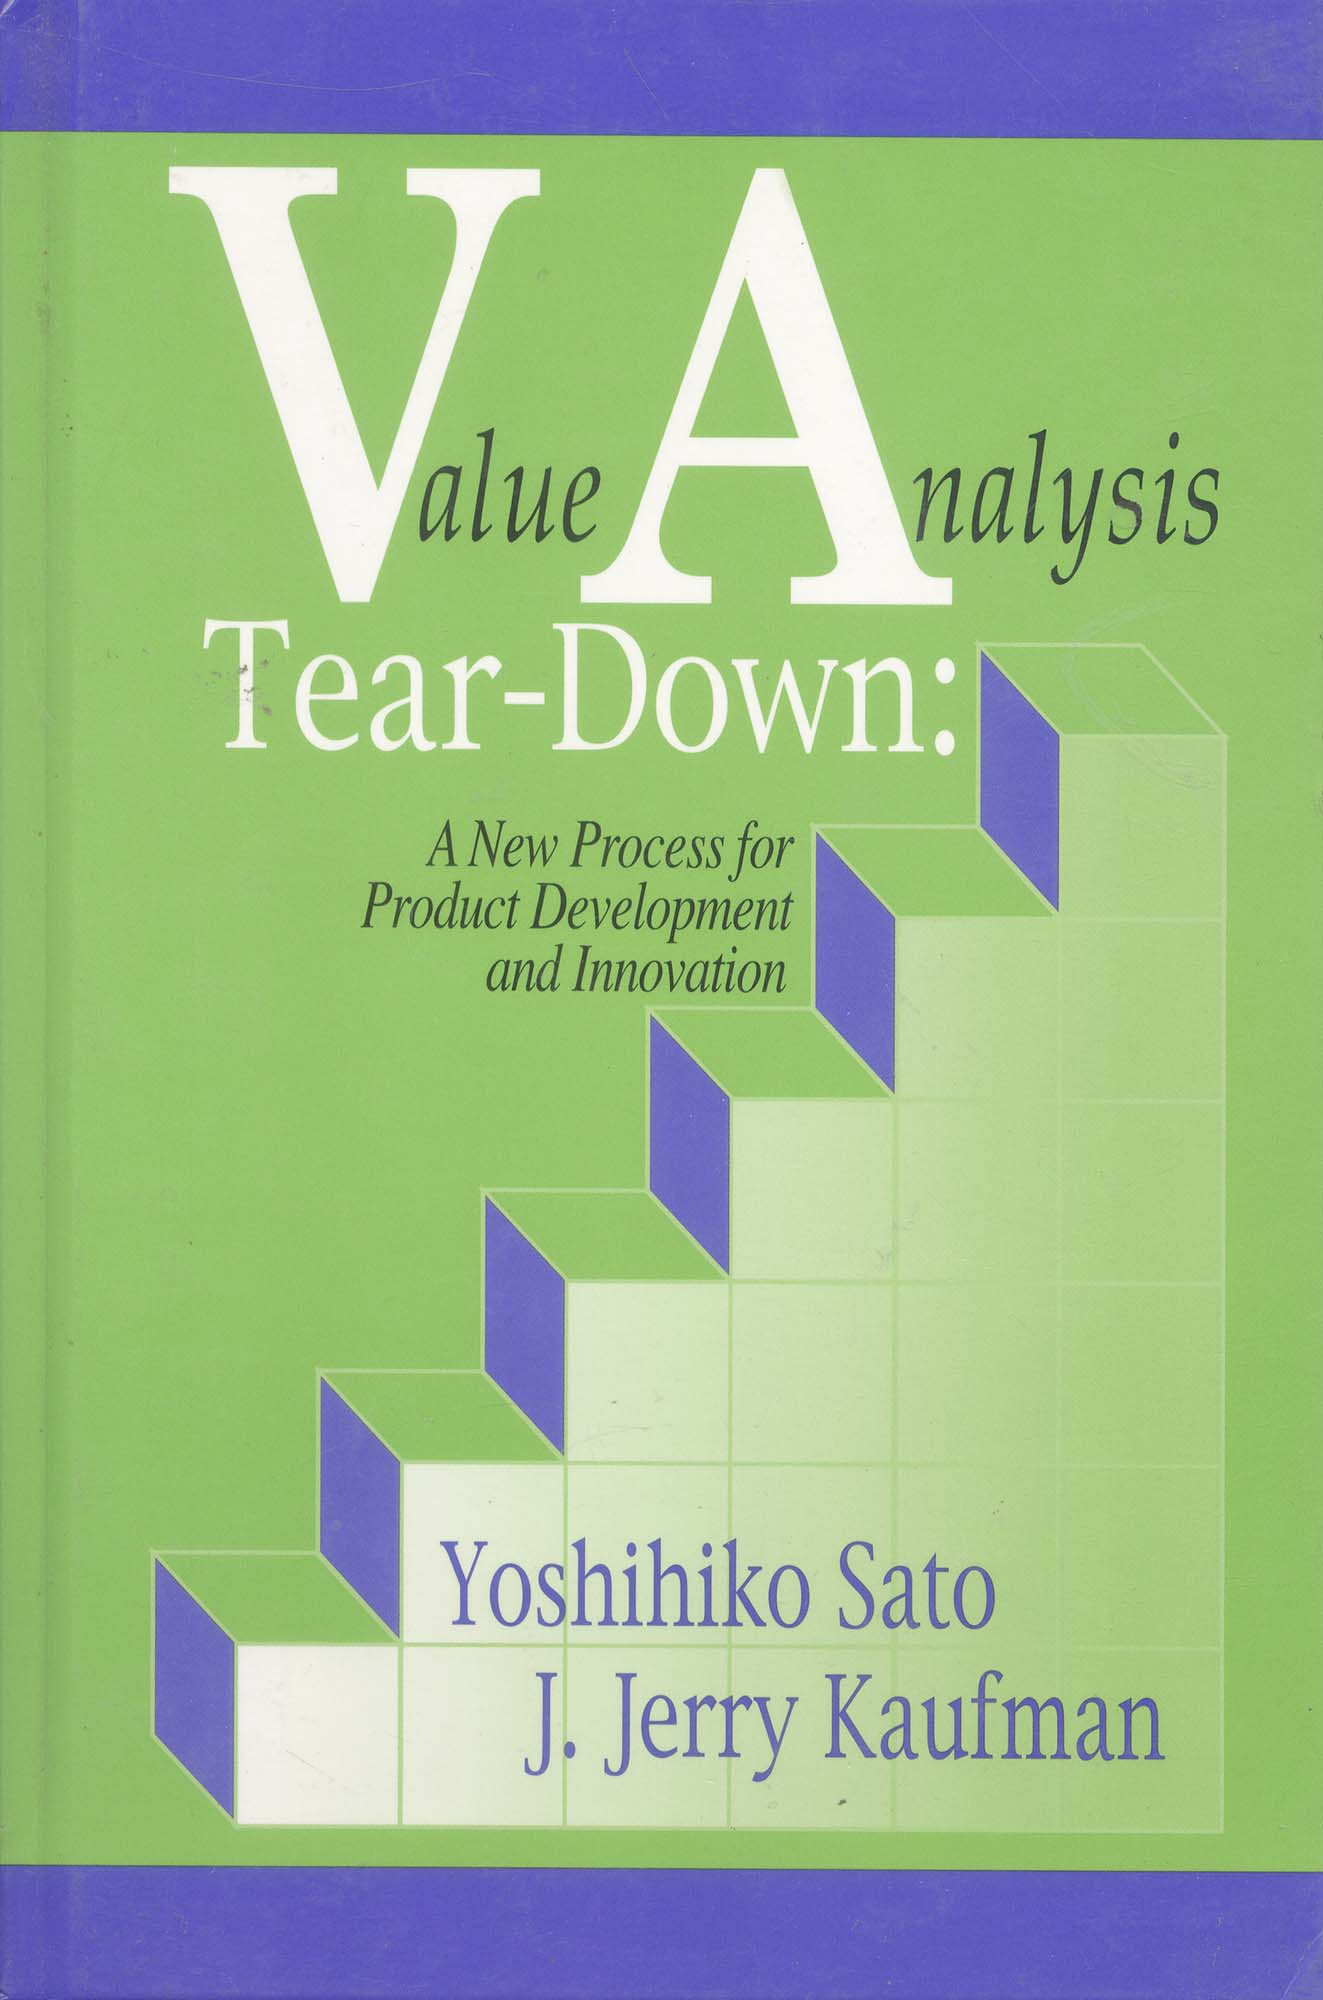 Book-Value Analysis Tear-Down